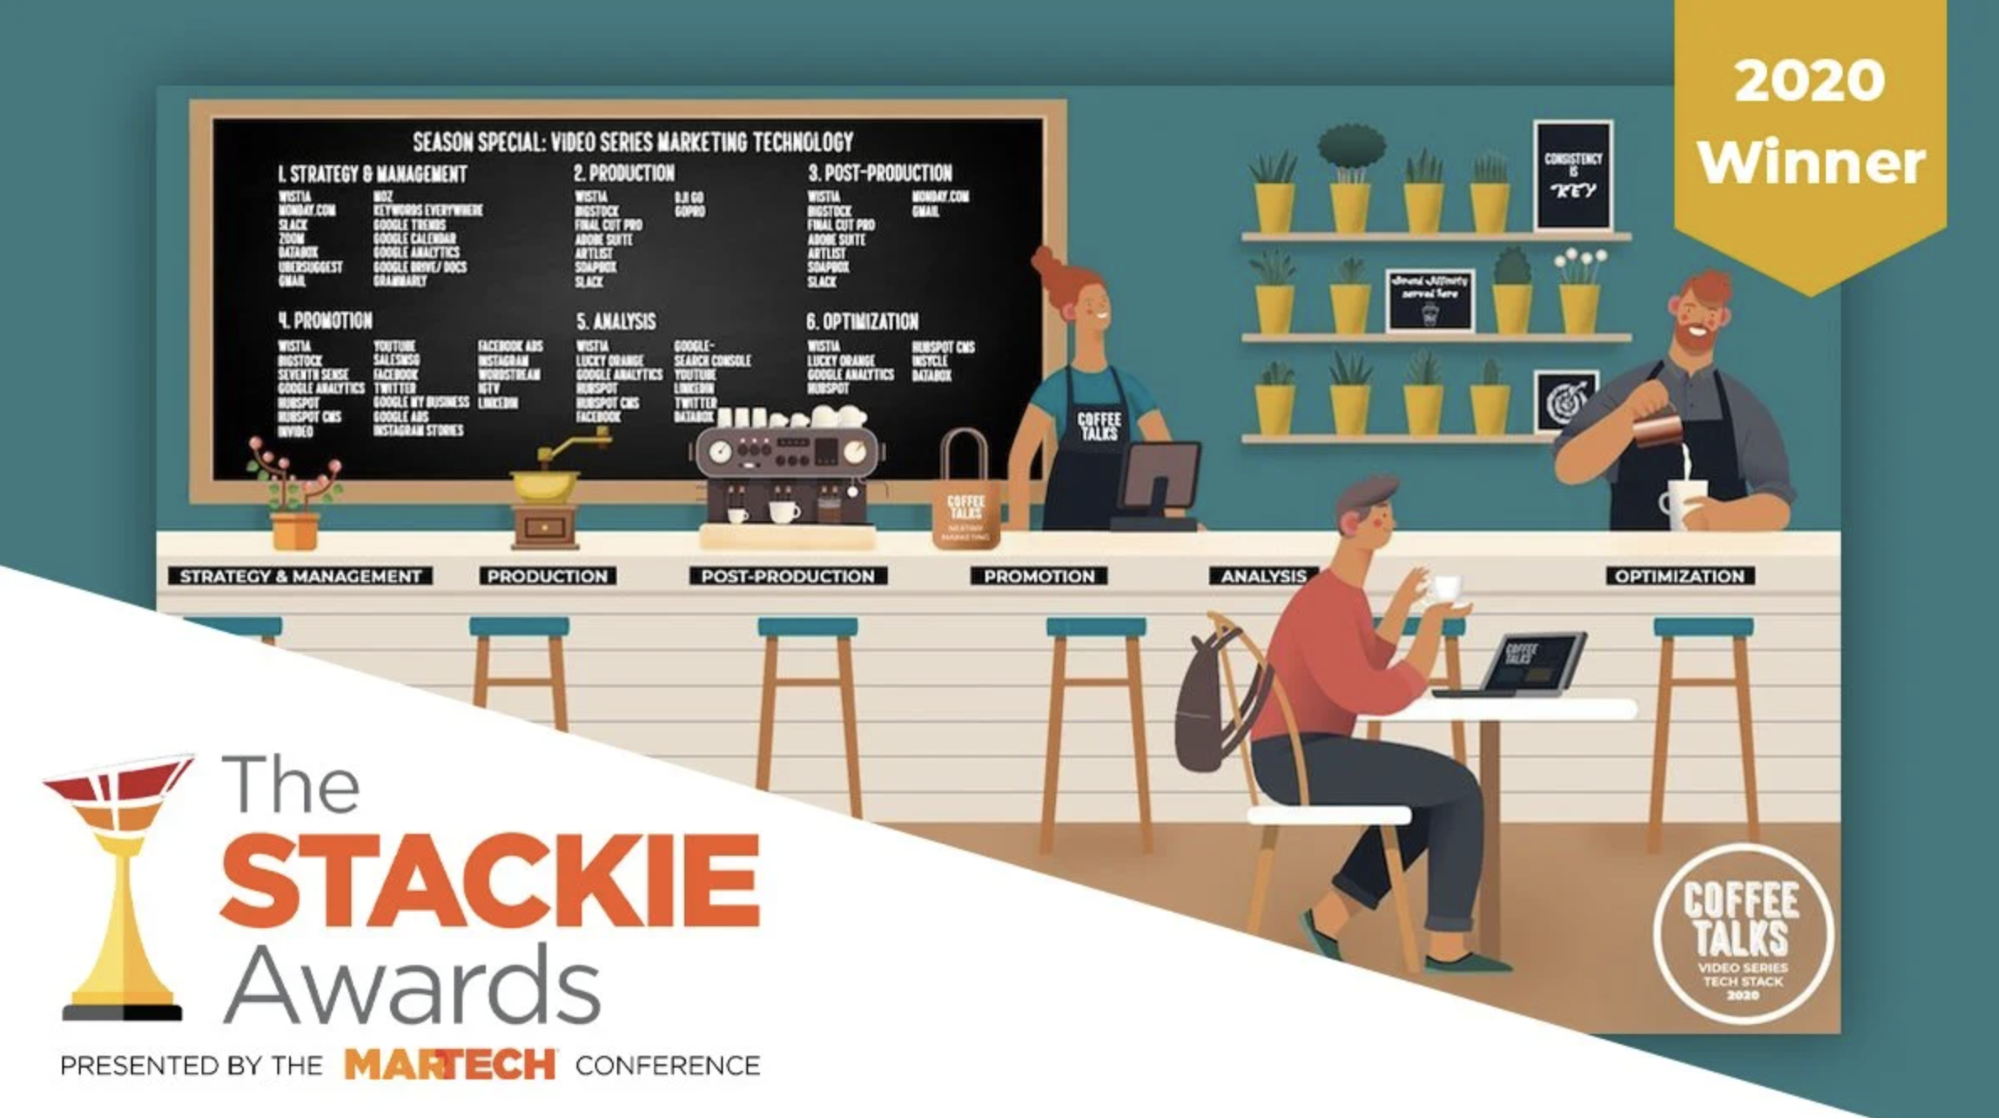 2020 stackie award winner Nextiny marketing video series marketing technology